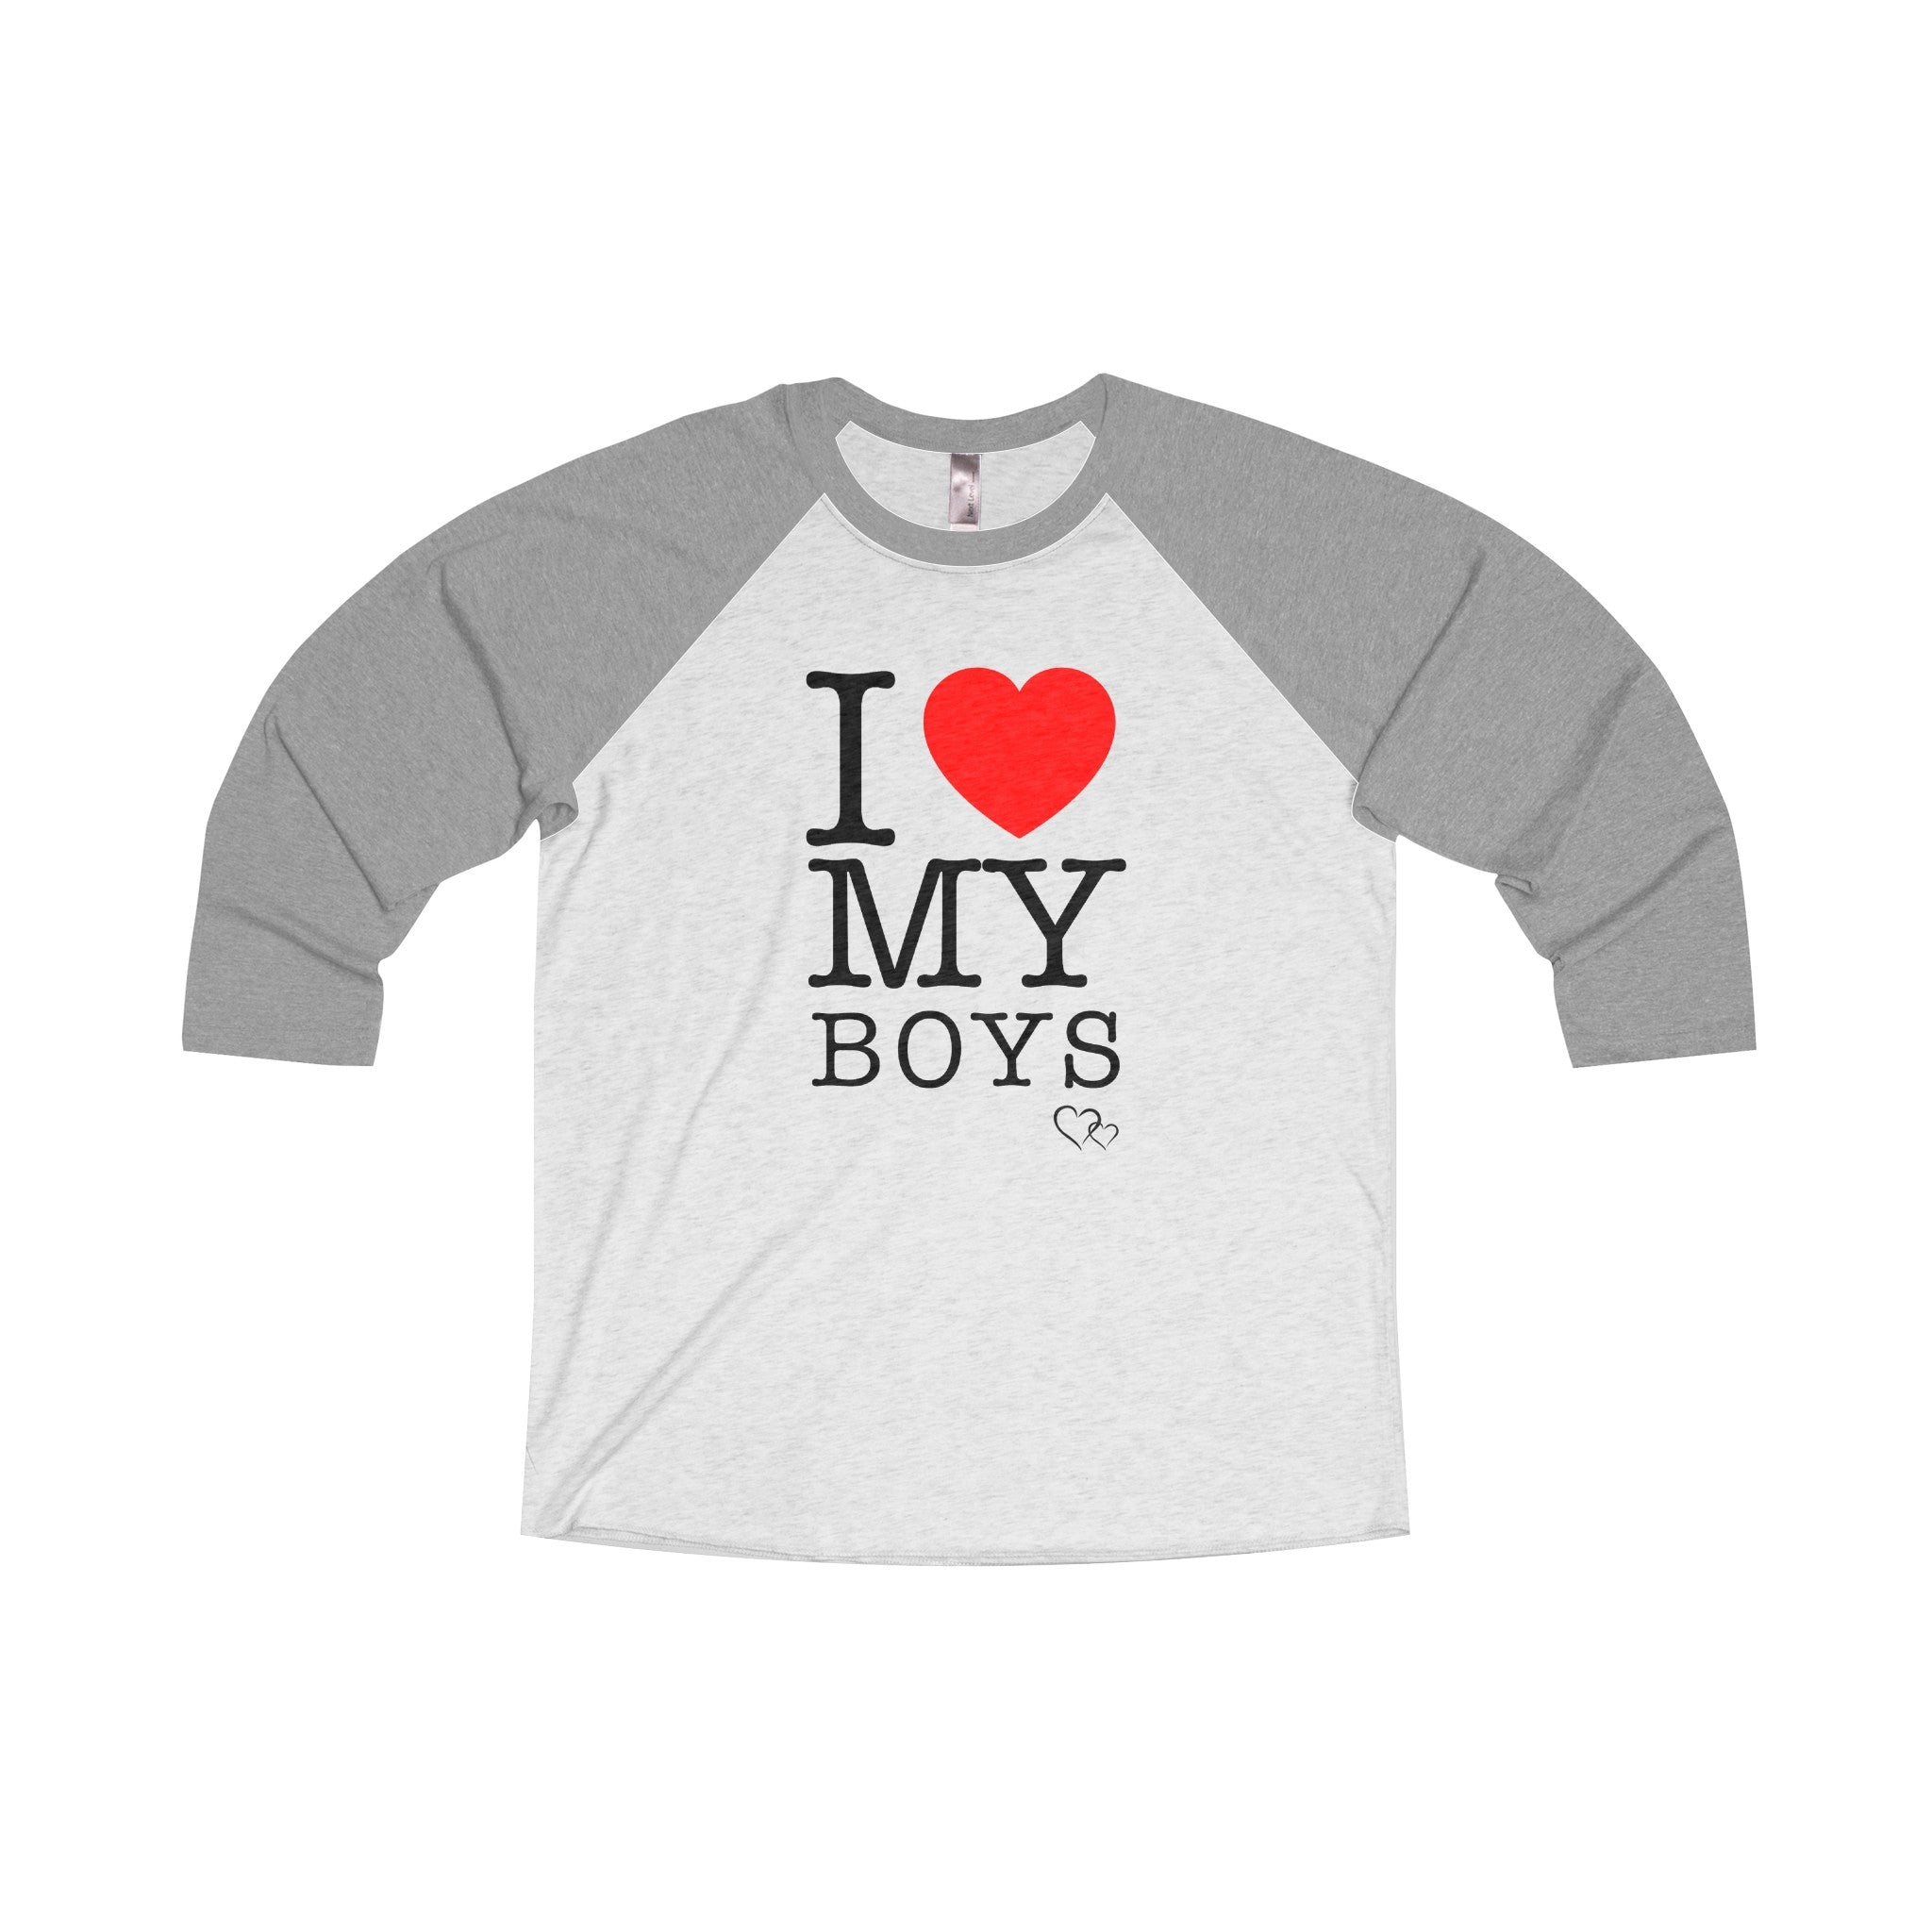 I LOVE MY BOYS - Baseball 3/4 Sleeve (Unisex)